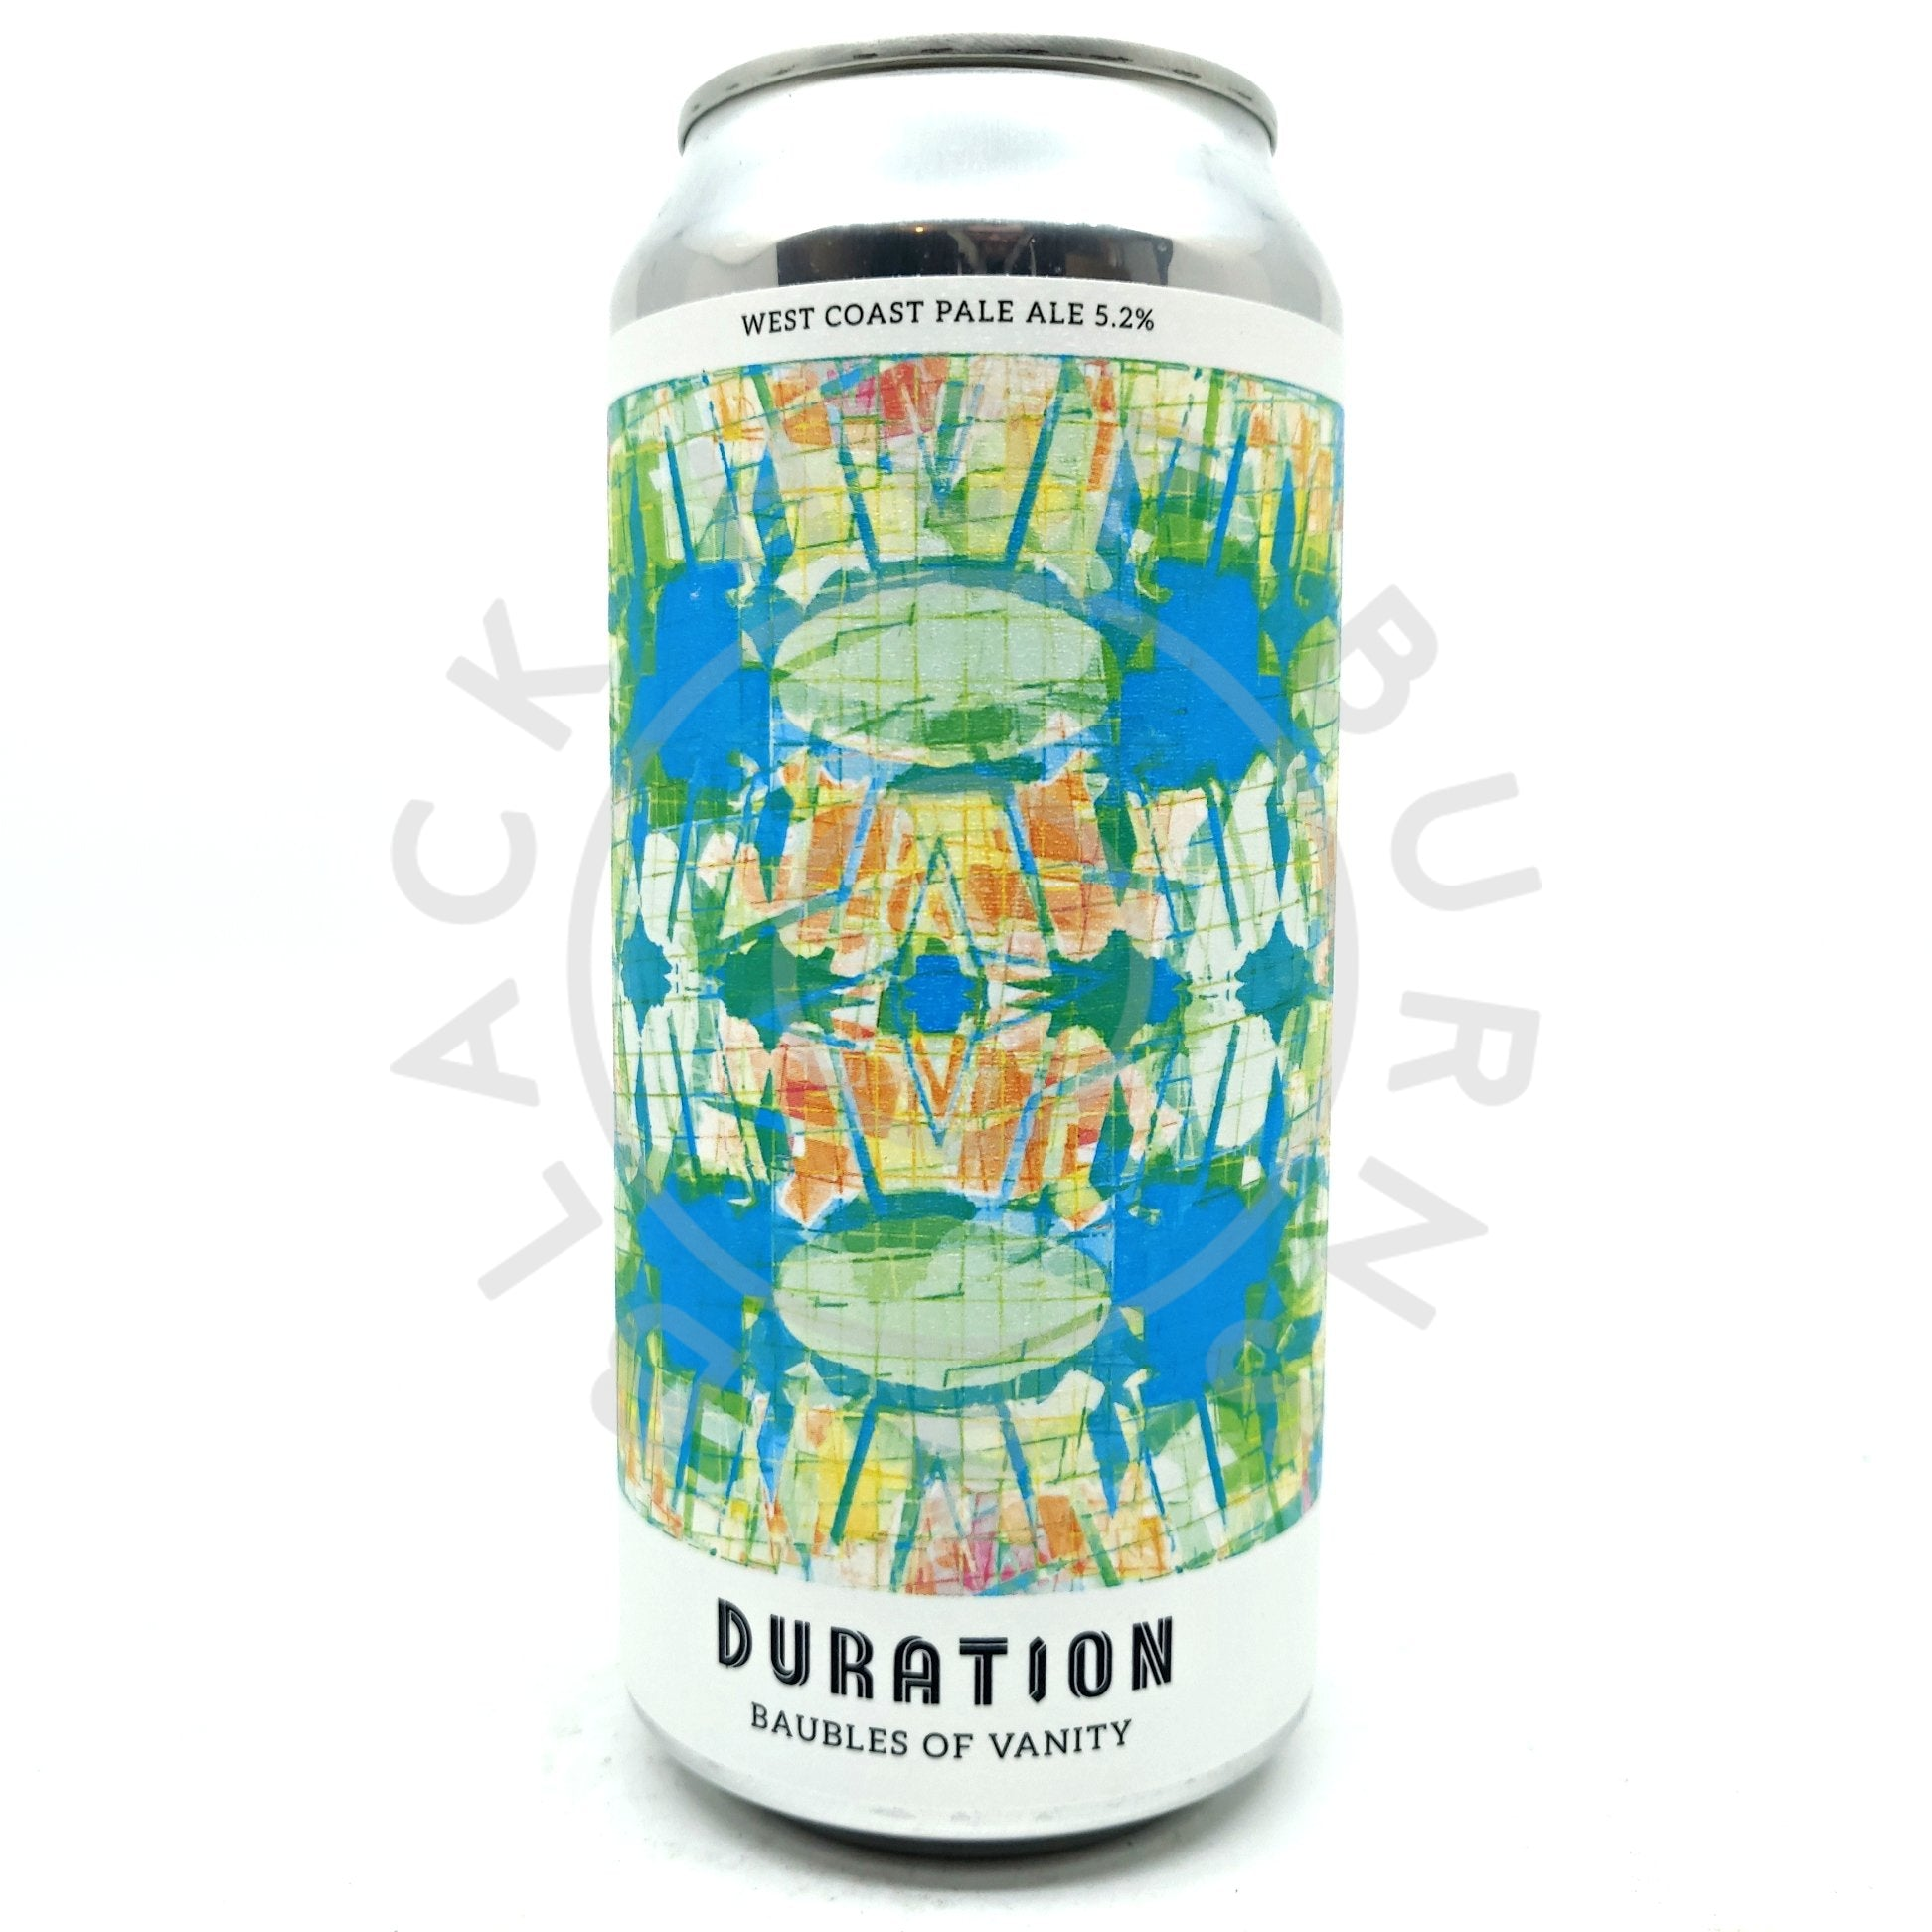 Duration Baubles of Vanity West Coast Pale Ale 5.2% (440ml can)-Hop Burns & Black